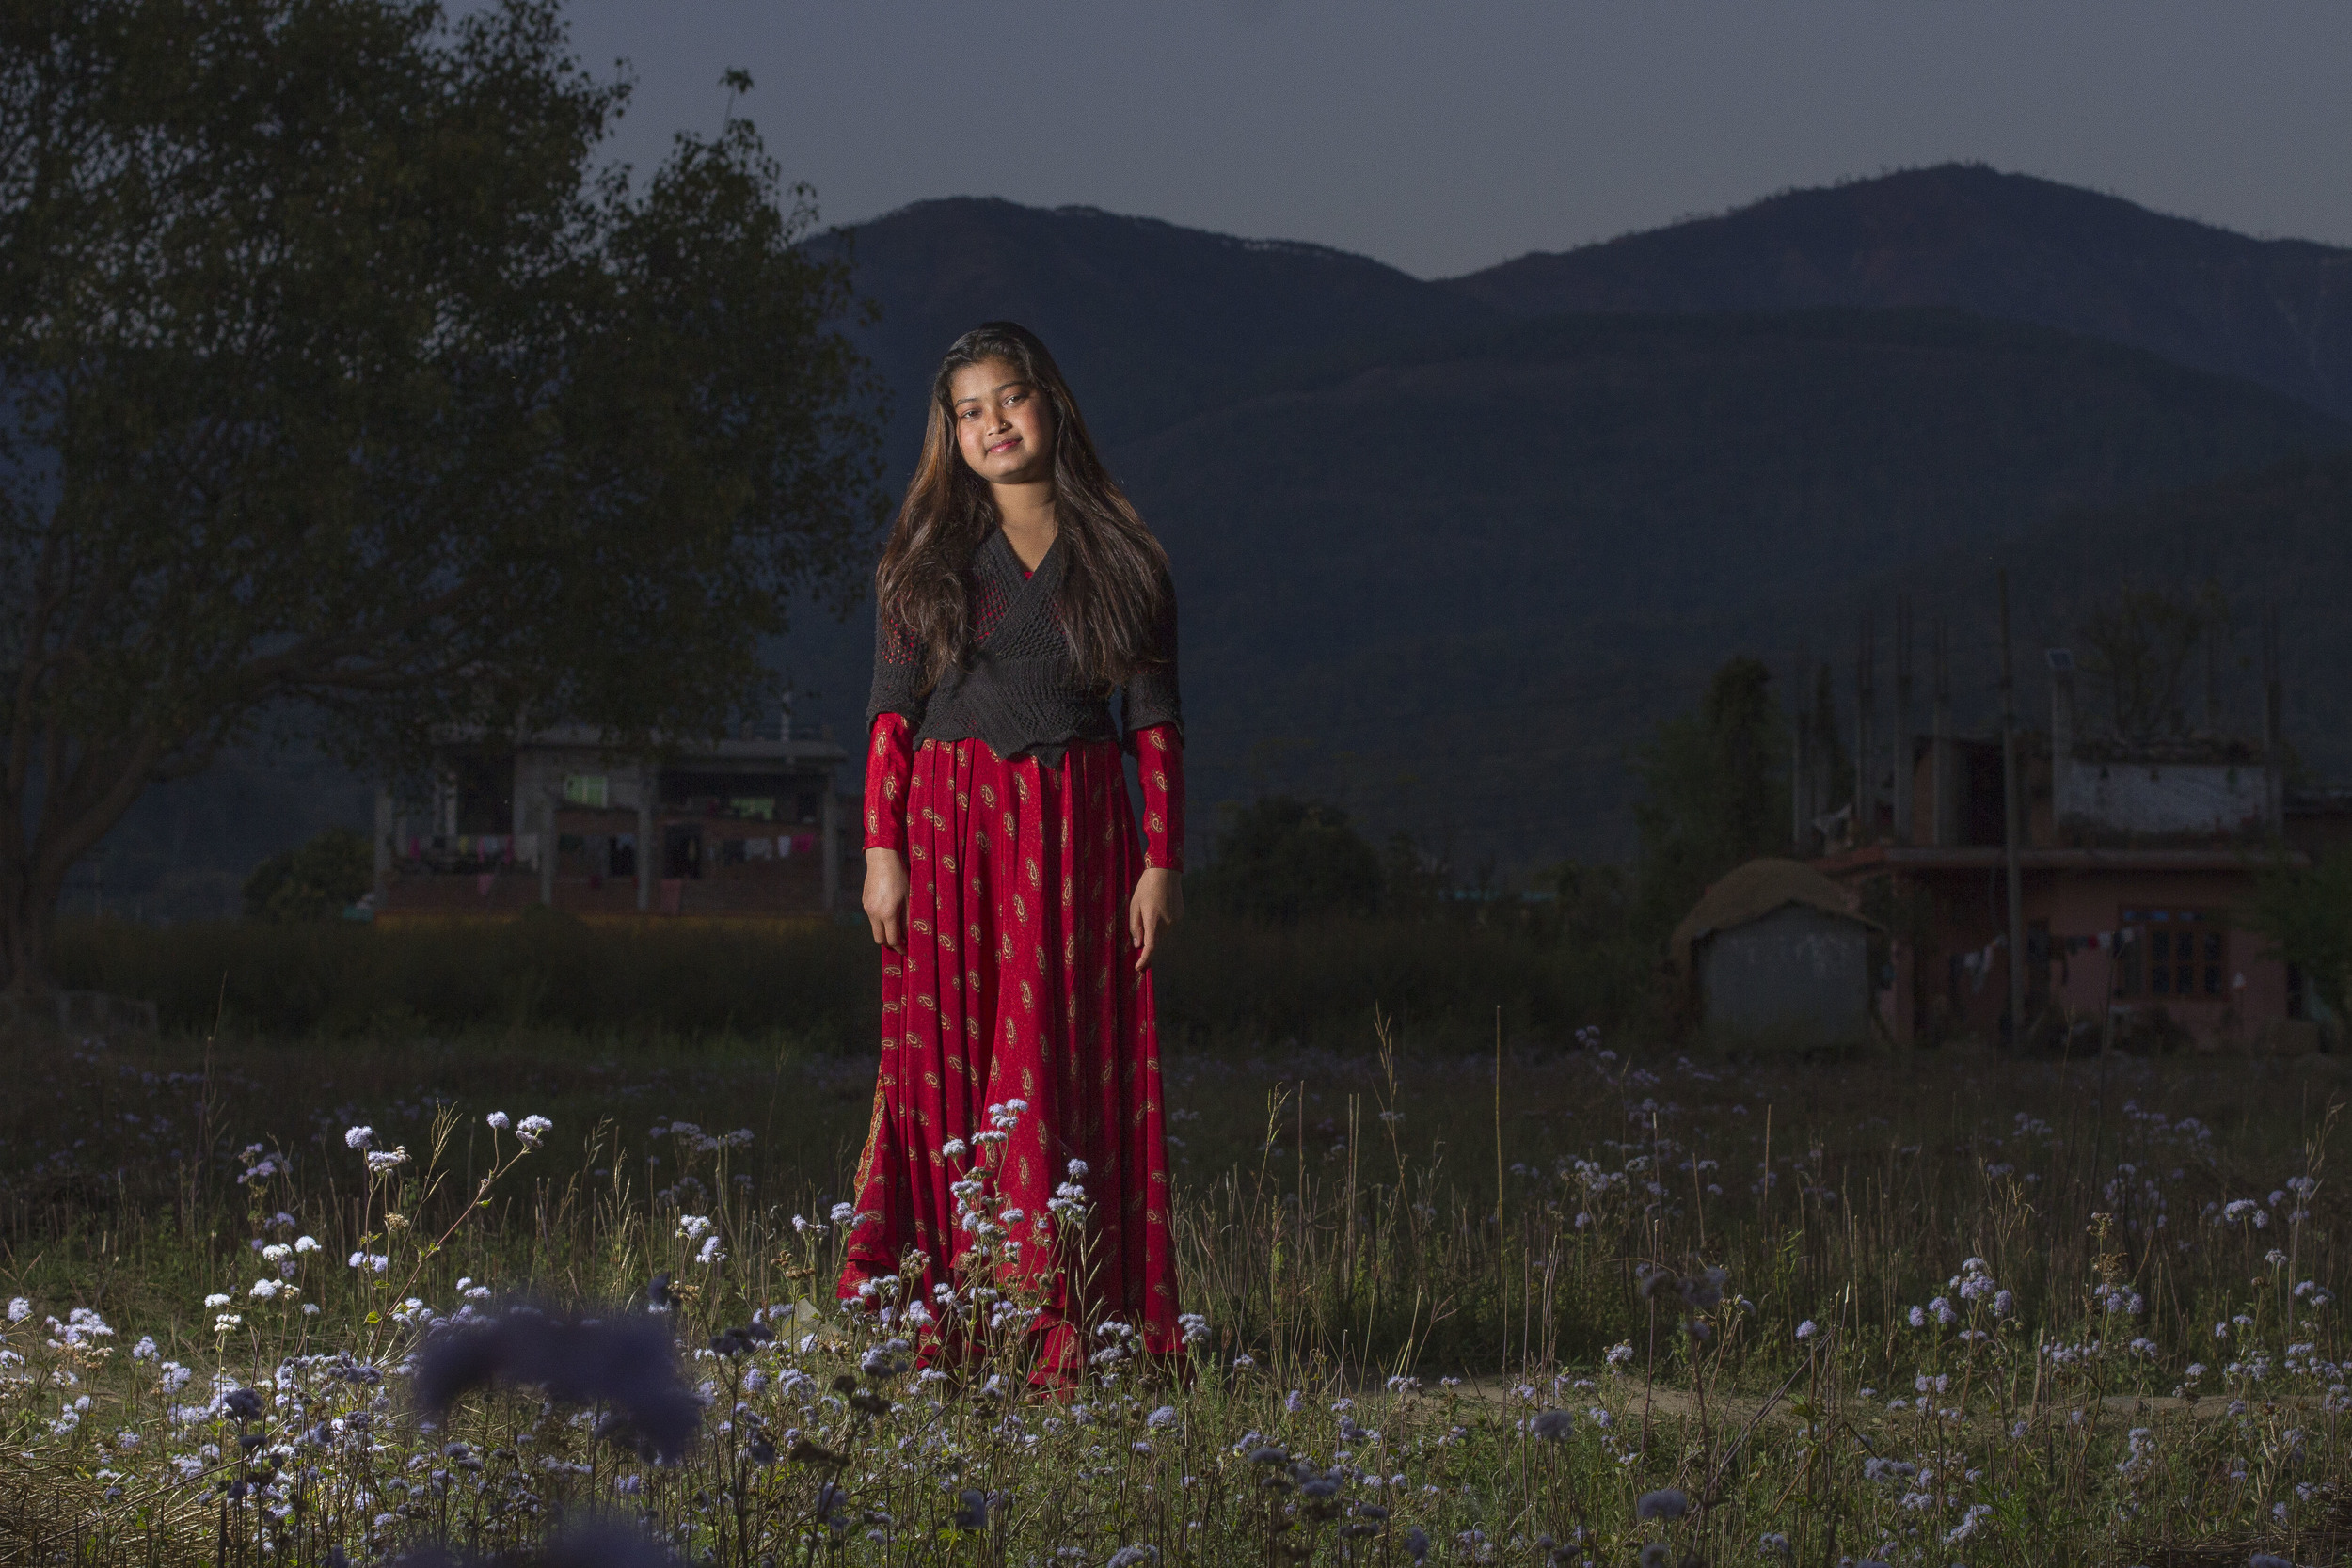 She's the First Scholar and poet Deepa N. poses in a field near her school in Nepal, March 2015. (photo by Kate Lord)